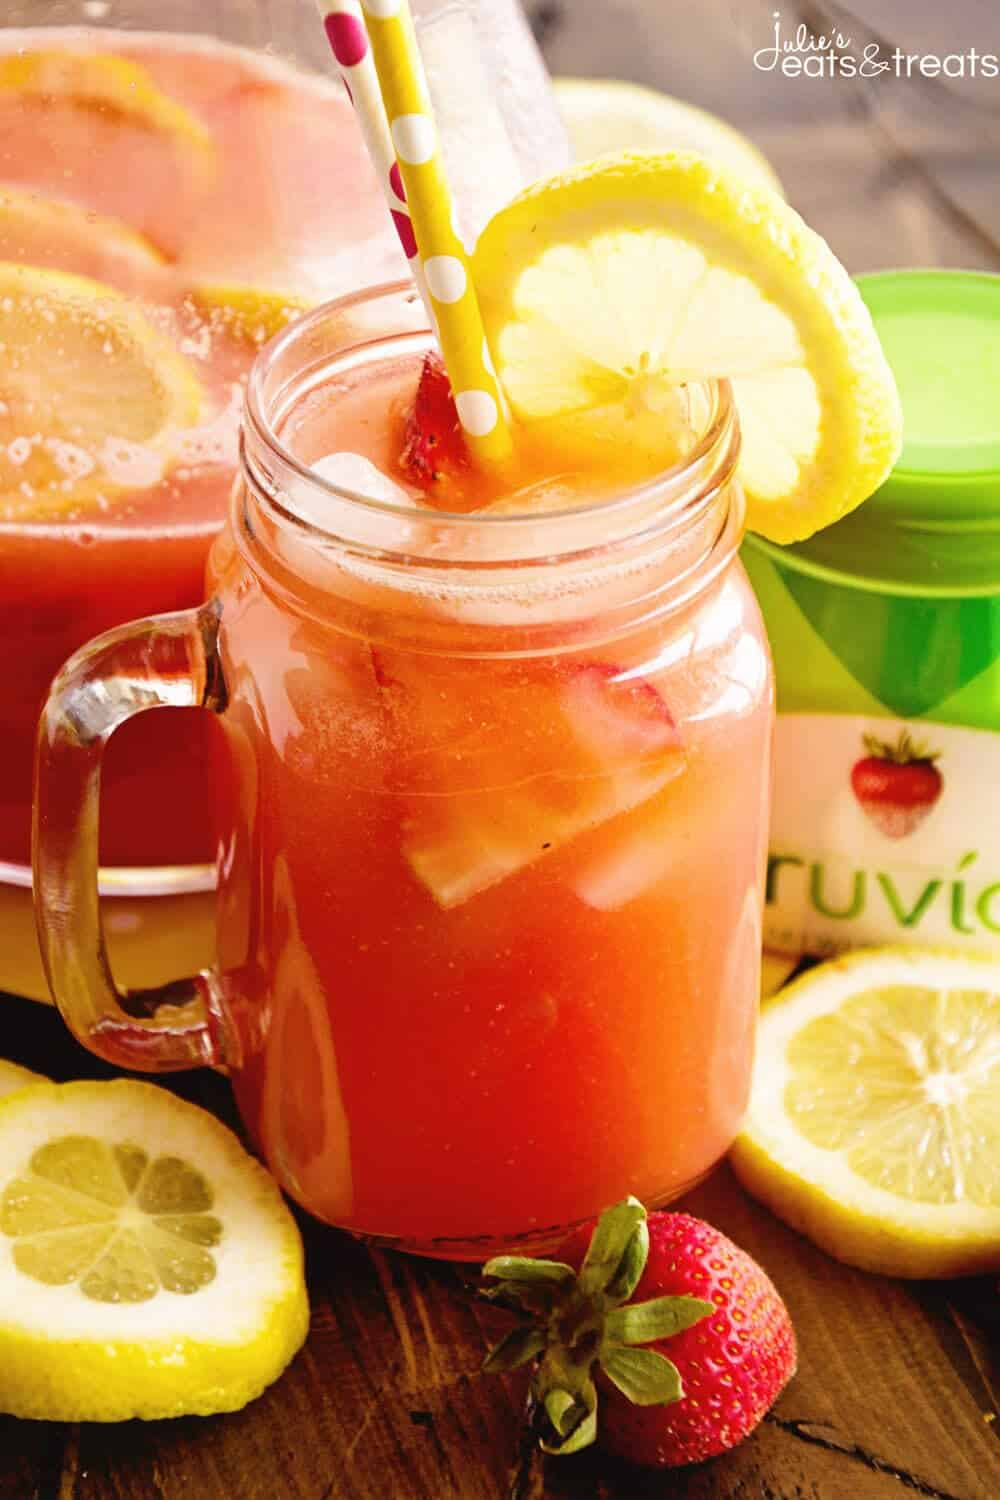 Skinny Spiked Strawberry Lemonade